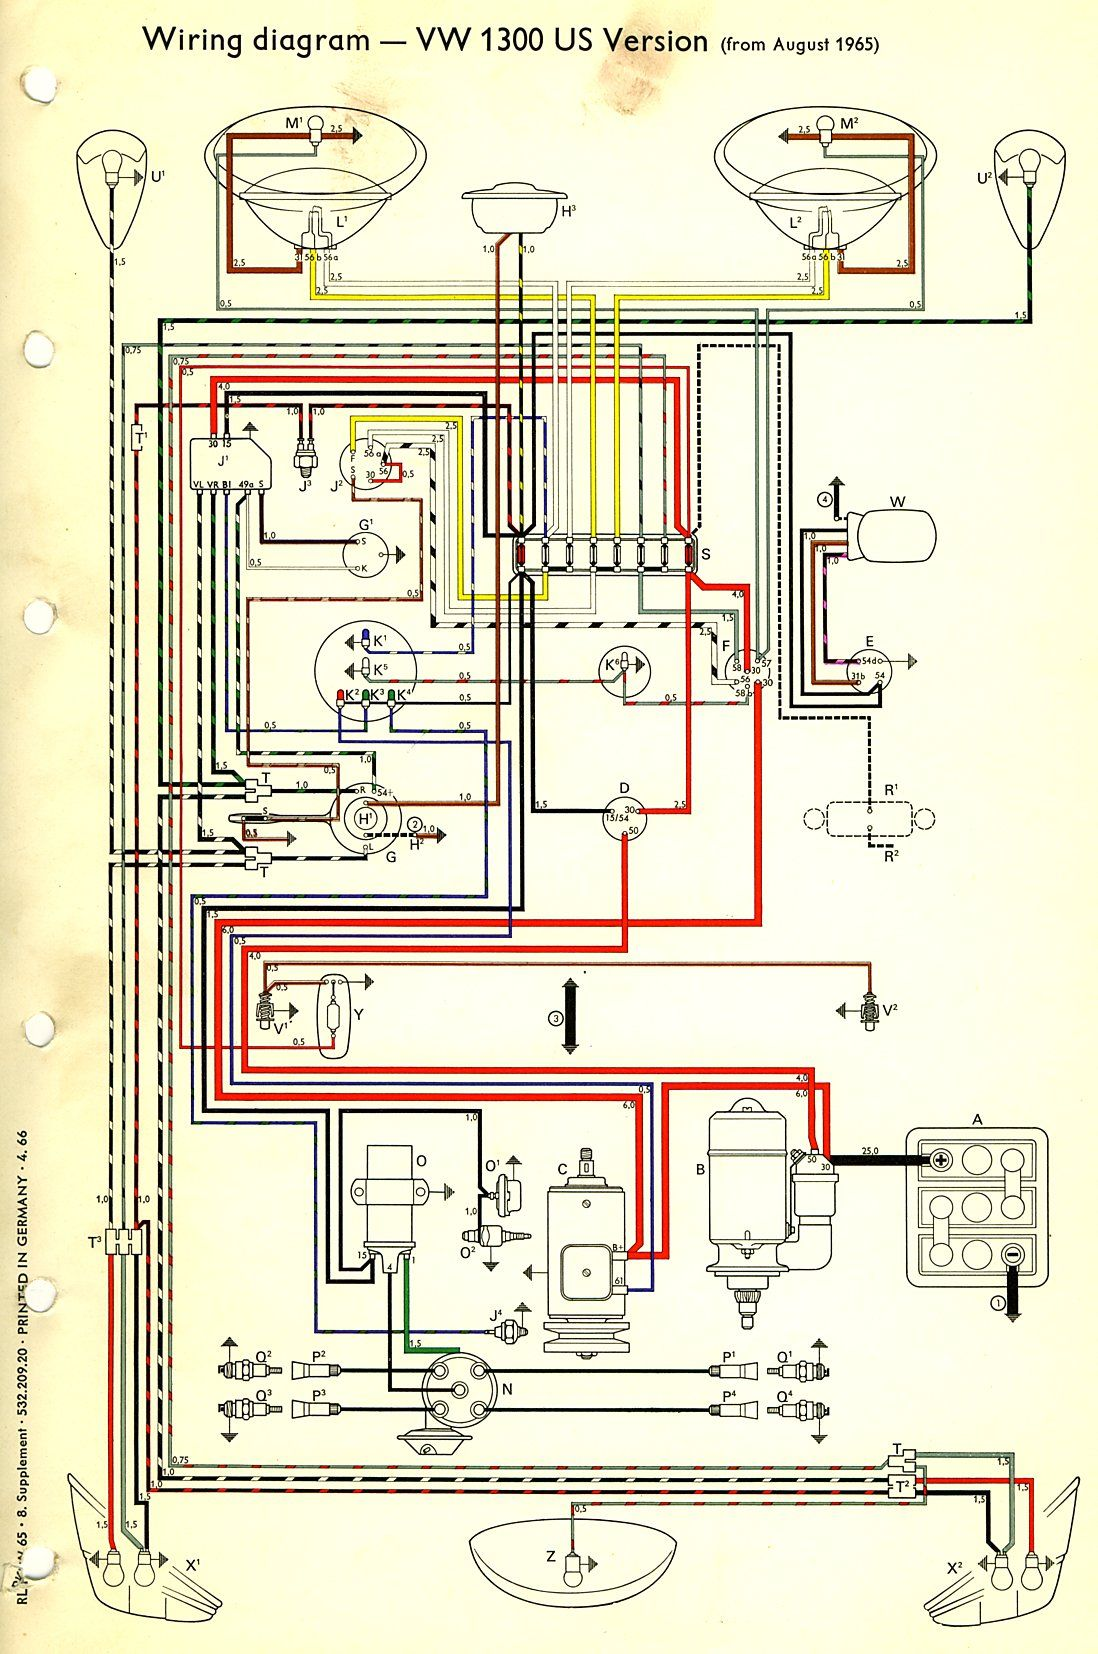 dune buggy wiring schematic google search 69 bug or 69 dune Ignition Wire Diagram for 1974 VW Bug  VW 1970 Wiring-Diagram Mutant Wiring Diagram Magneto Wiring Diagram